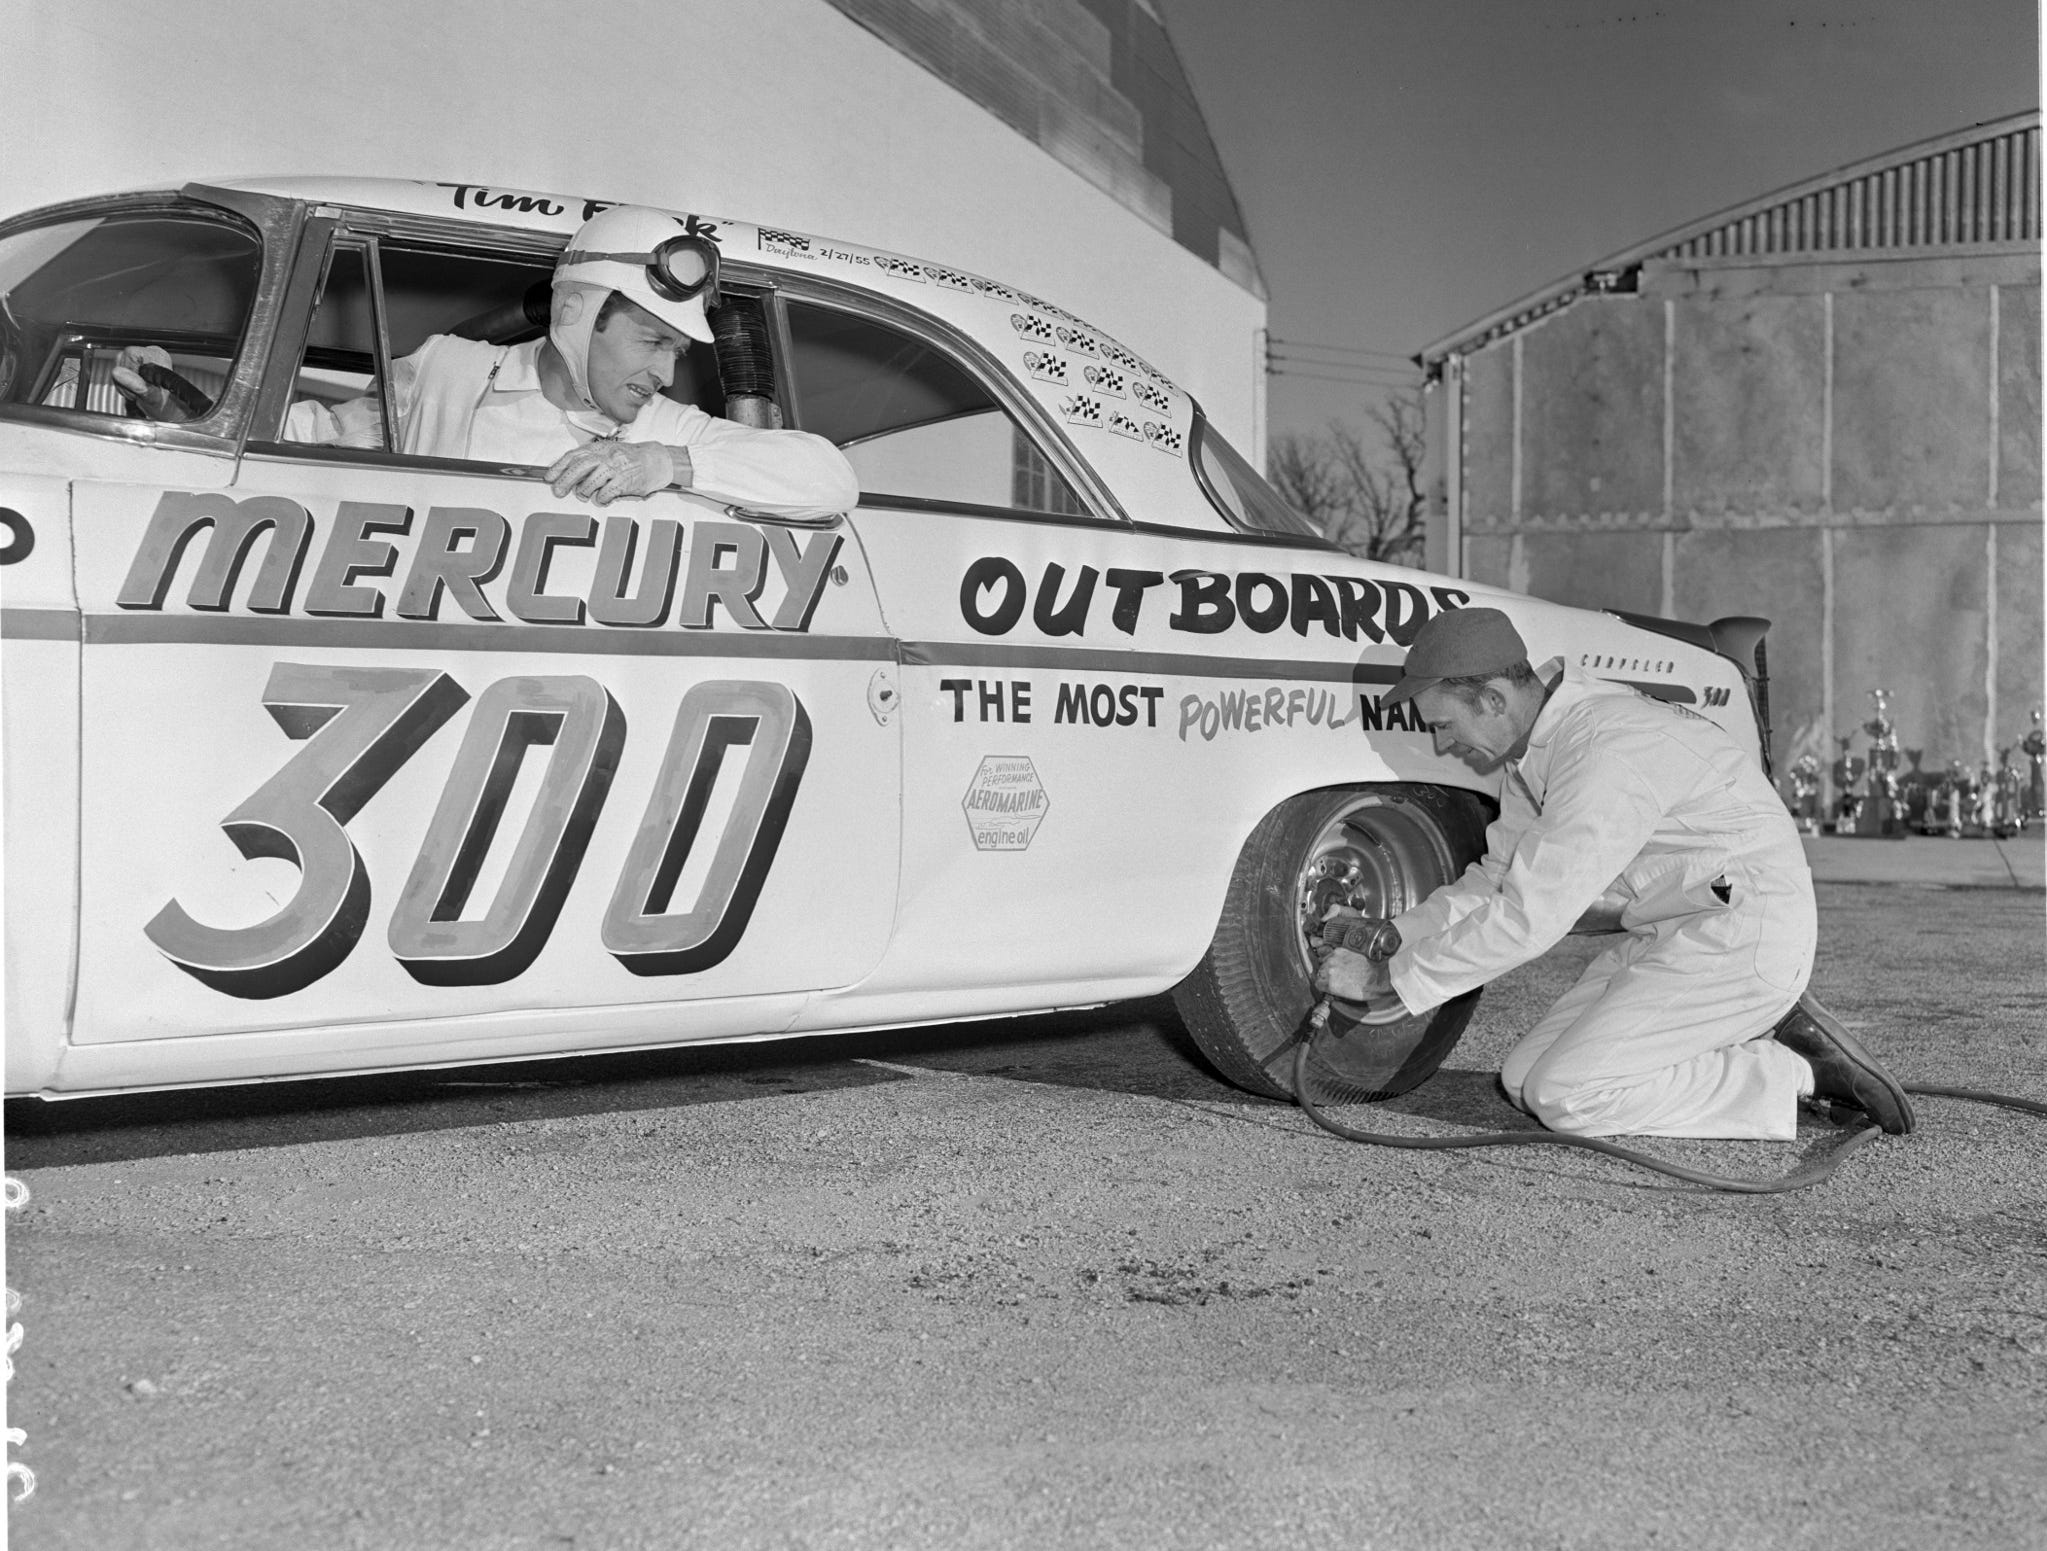 In the 1950s, Carl Kiekhaefer started a NASCAR team to display Mercury product. Competing for two years, his team won the NASCAR Grand National championship twice.